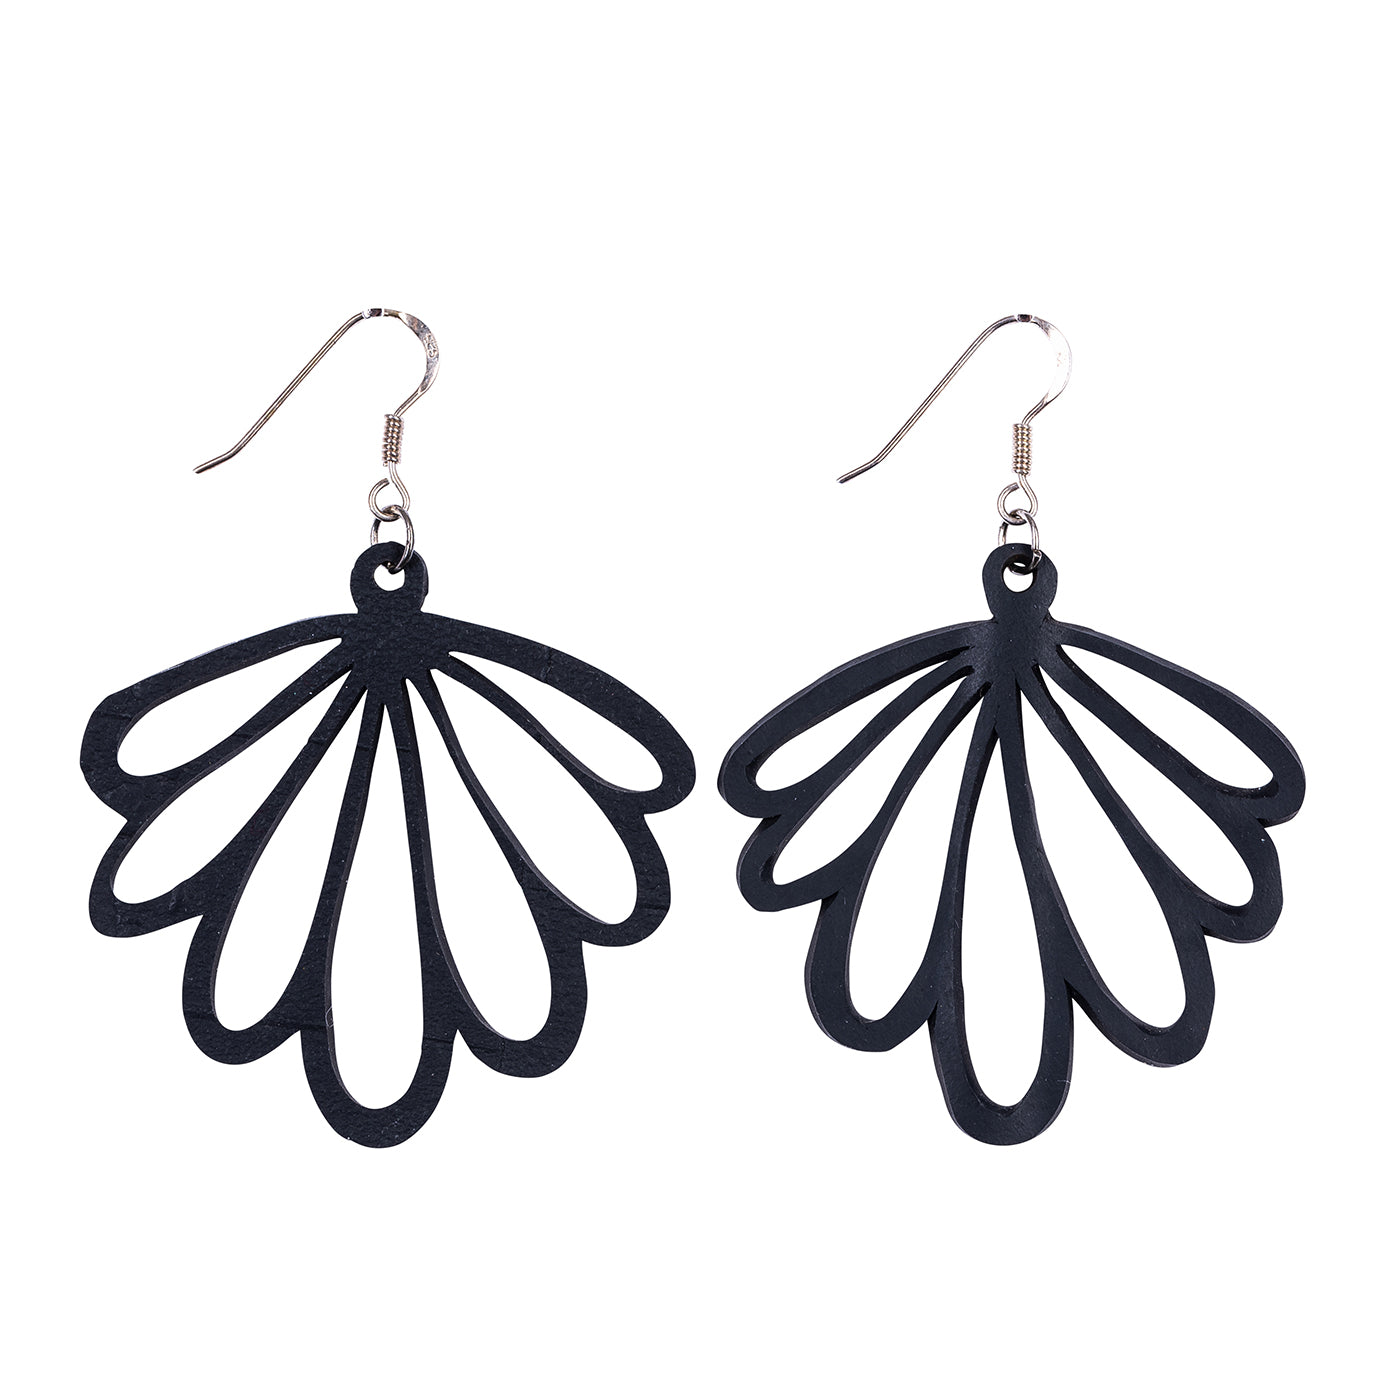 Shell Recycled Rubber Earrings by Paguro Upcycle